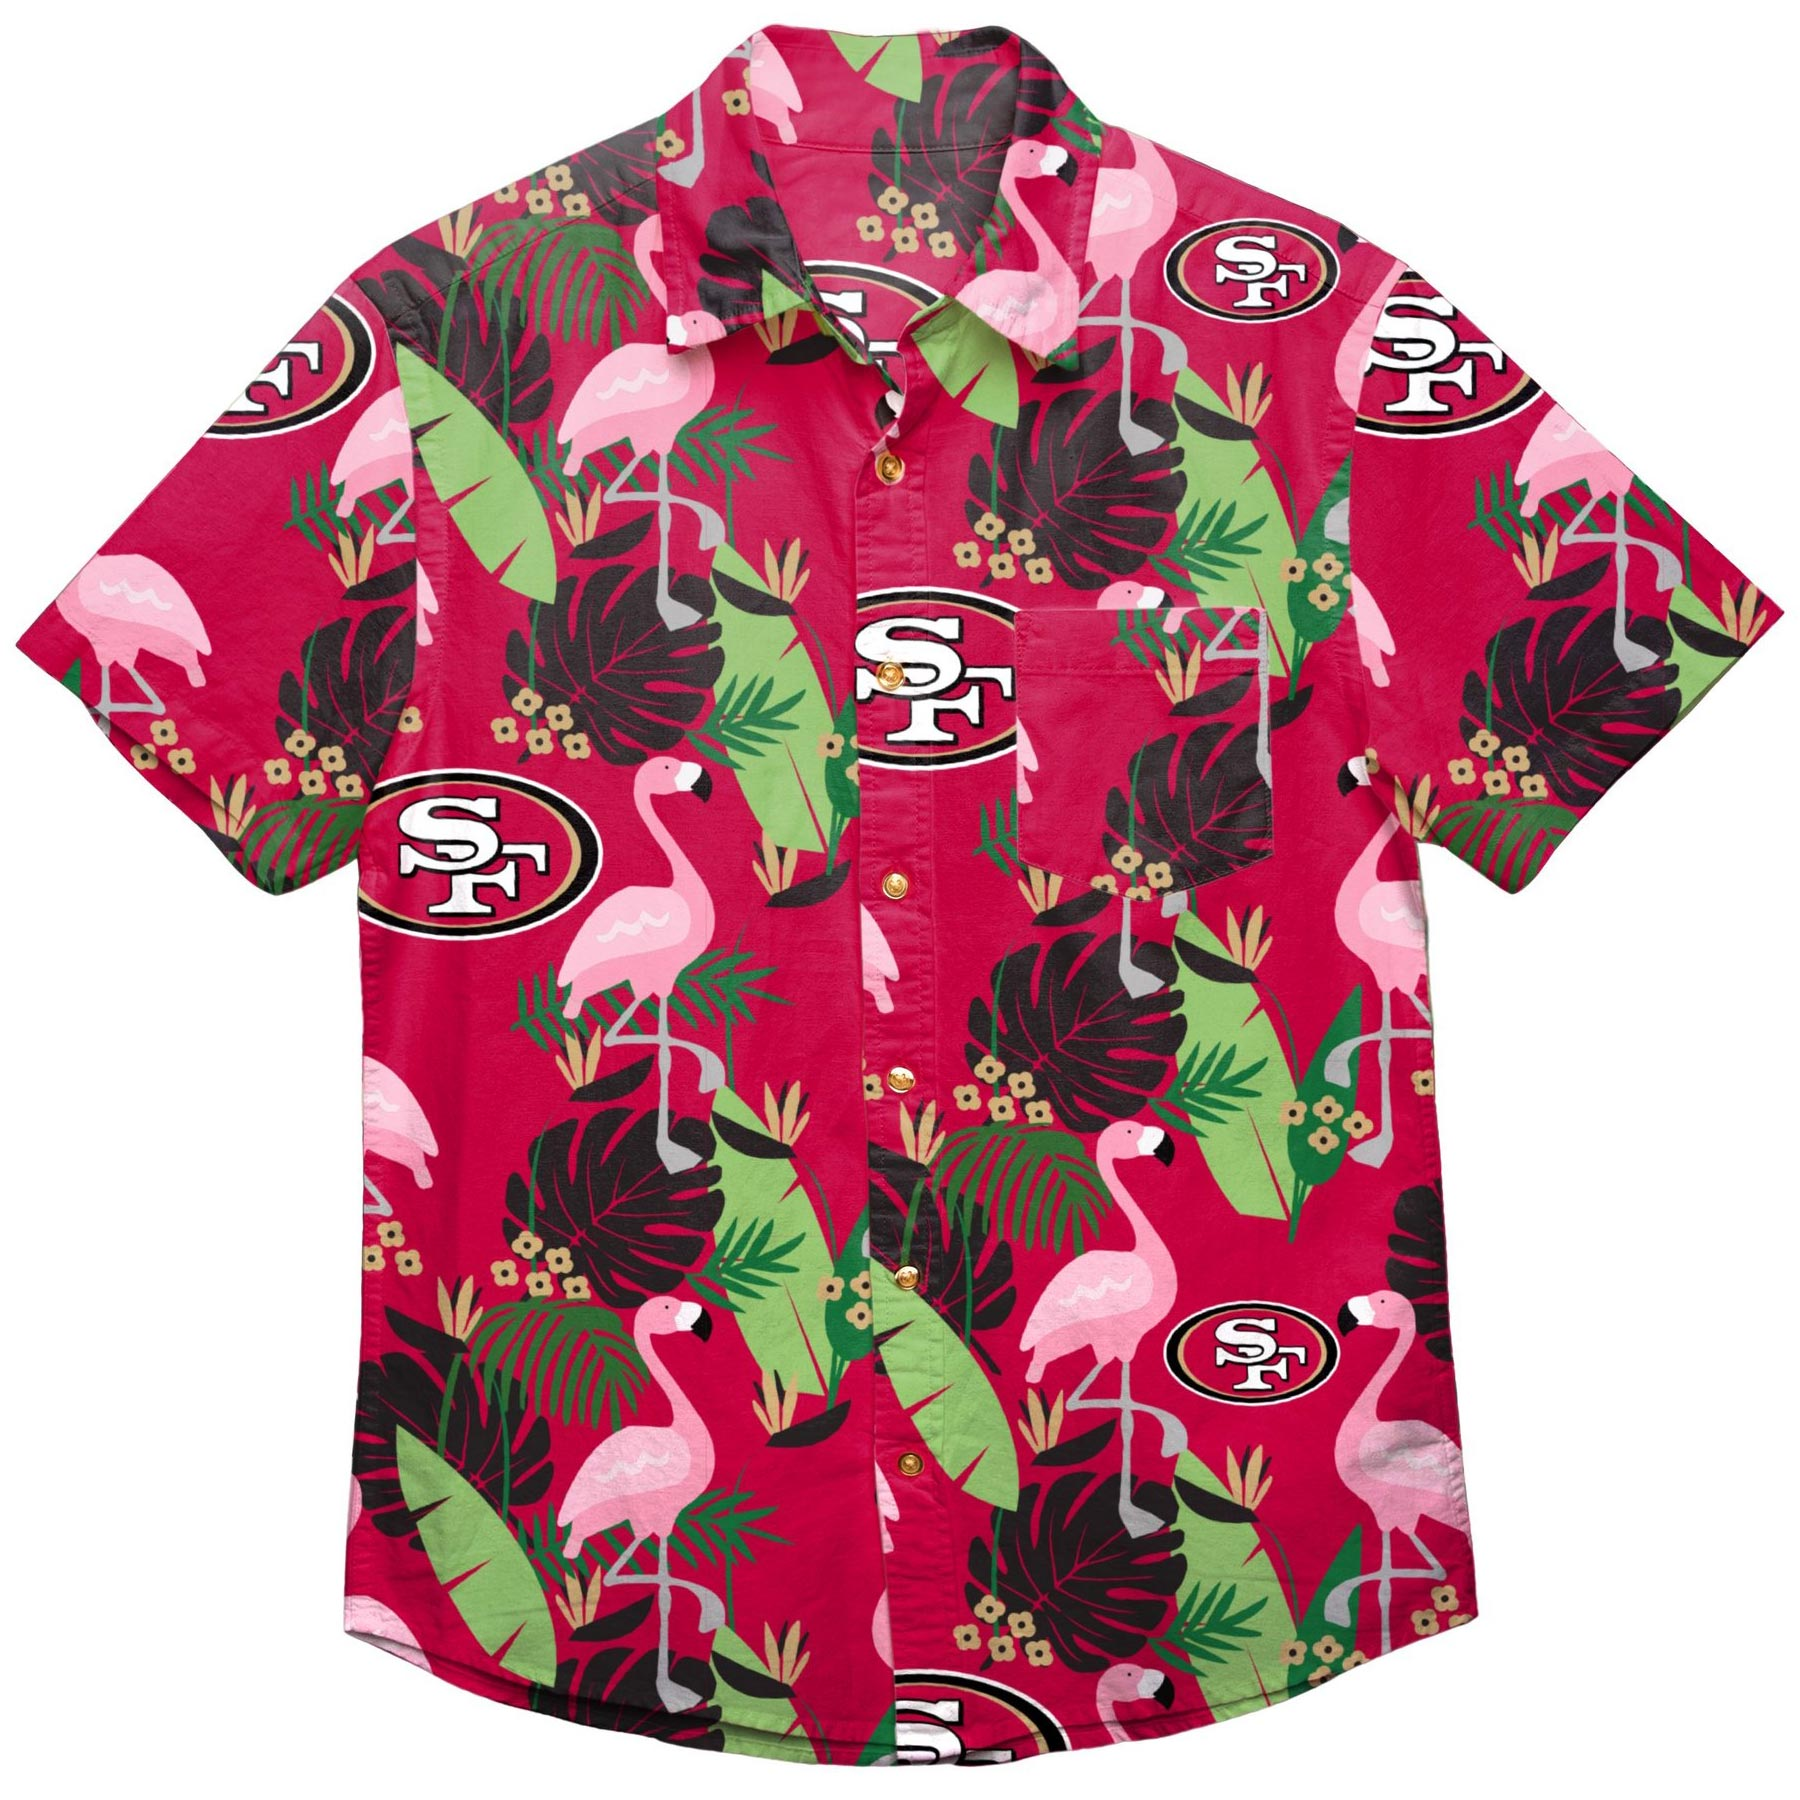 phpfAyV4z San Francisco 49ers NFL Floral Print Button Up Shirt by Forever Collectibles - Size XL - IceJerseys NFL T-Shirts & Tops Teamware / Logo